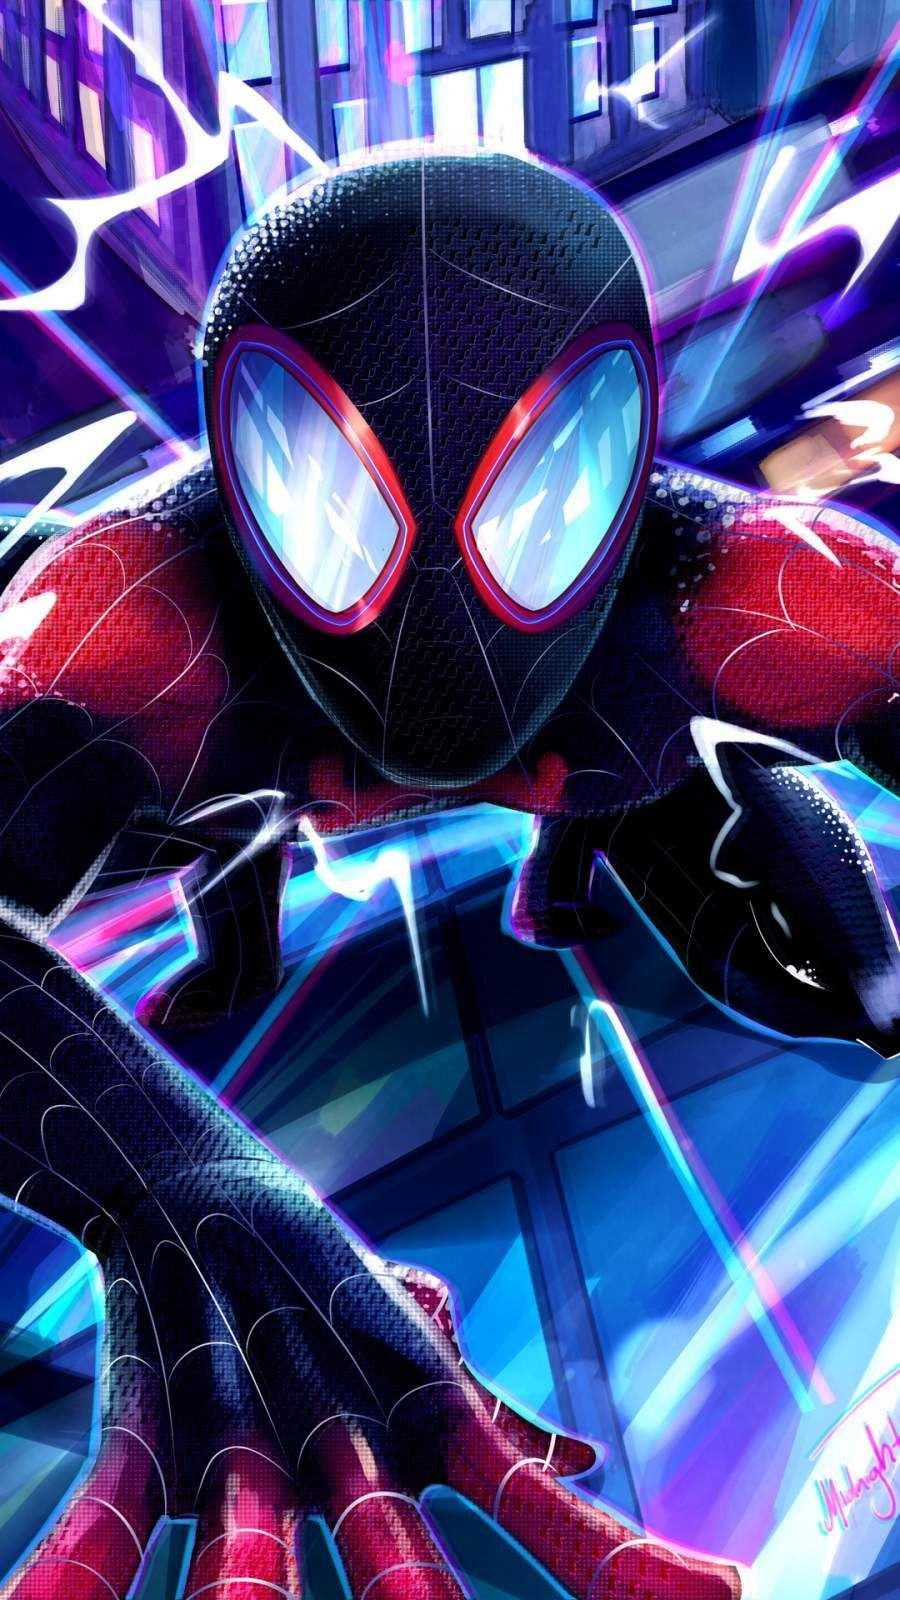 Iphone11 Iphone11pro 11promax Iphone6s 6spluswallpaper Iphone7 7pluswallpaper Iphonesewallpaper Iphon In 2020 Miles Morales Spiderman Spiderman Ultimate Spiderman